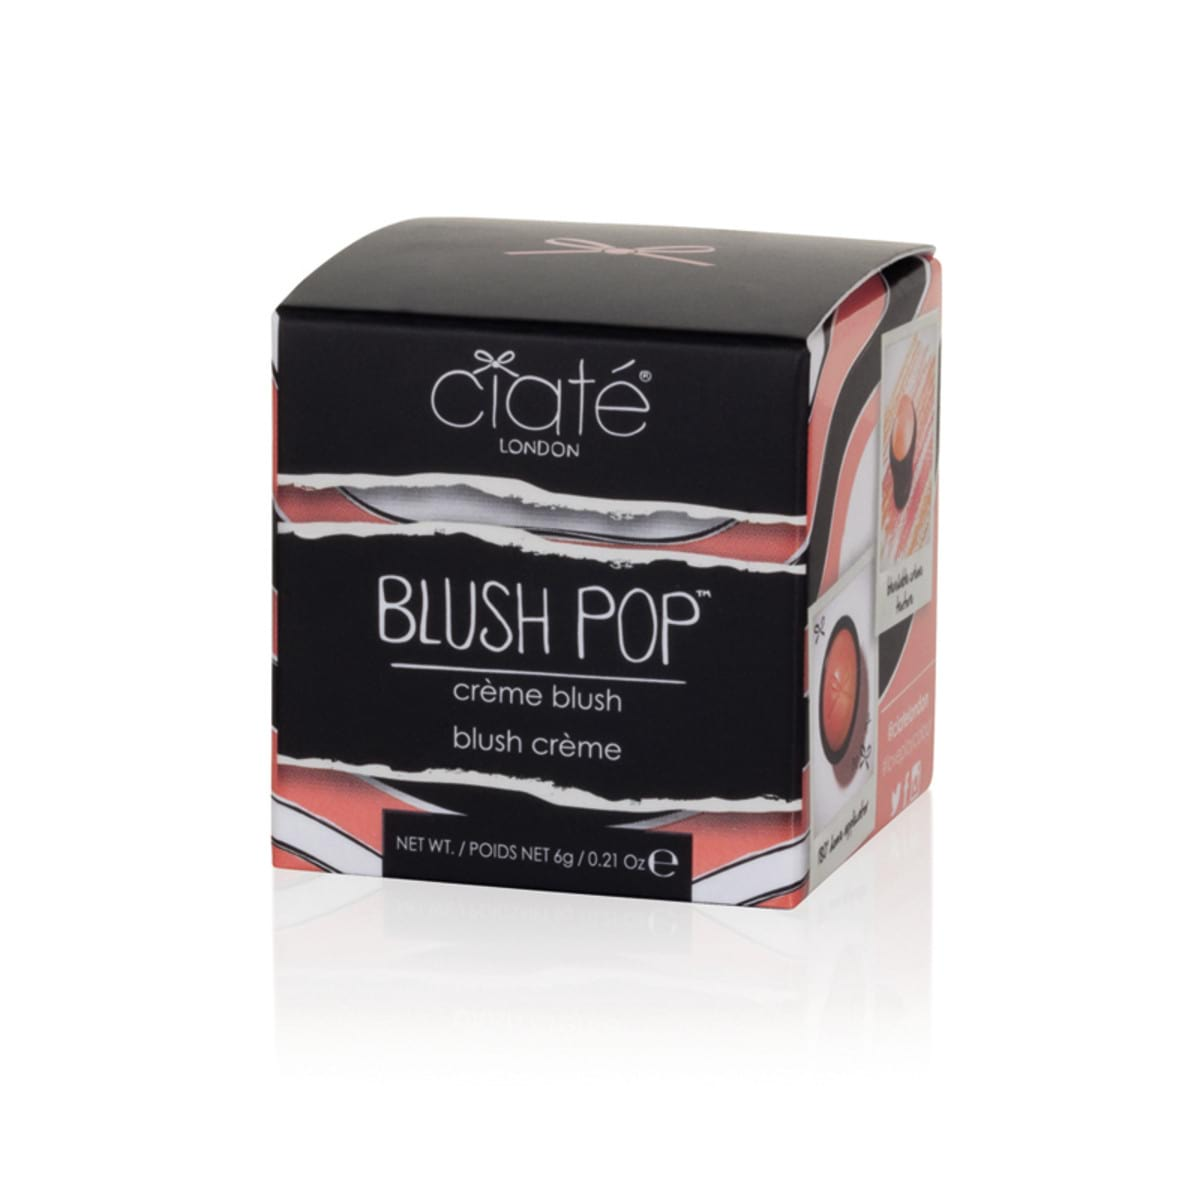 BP001 Blush Pop Pack Shot Darling